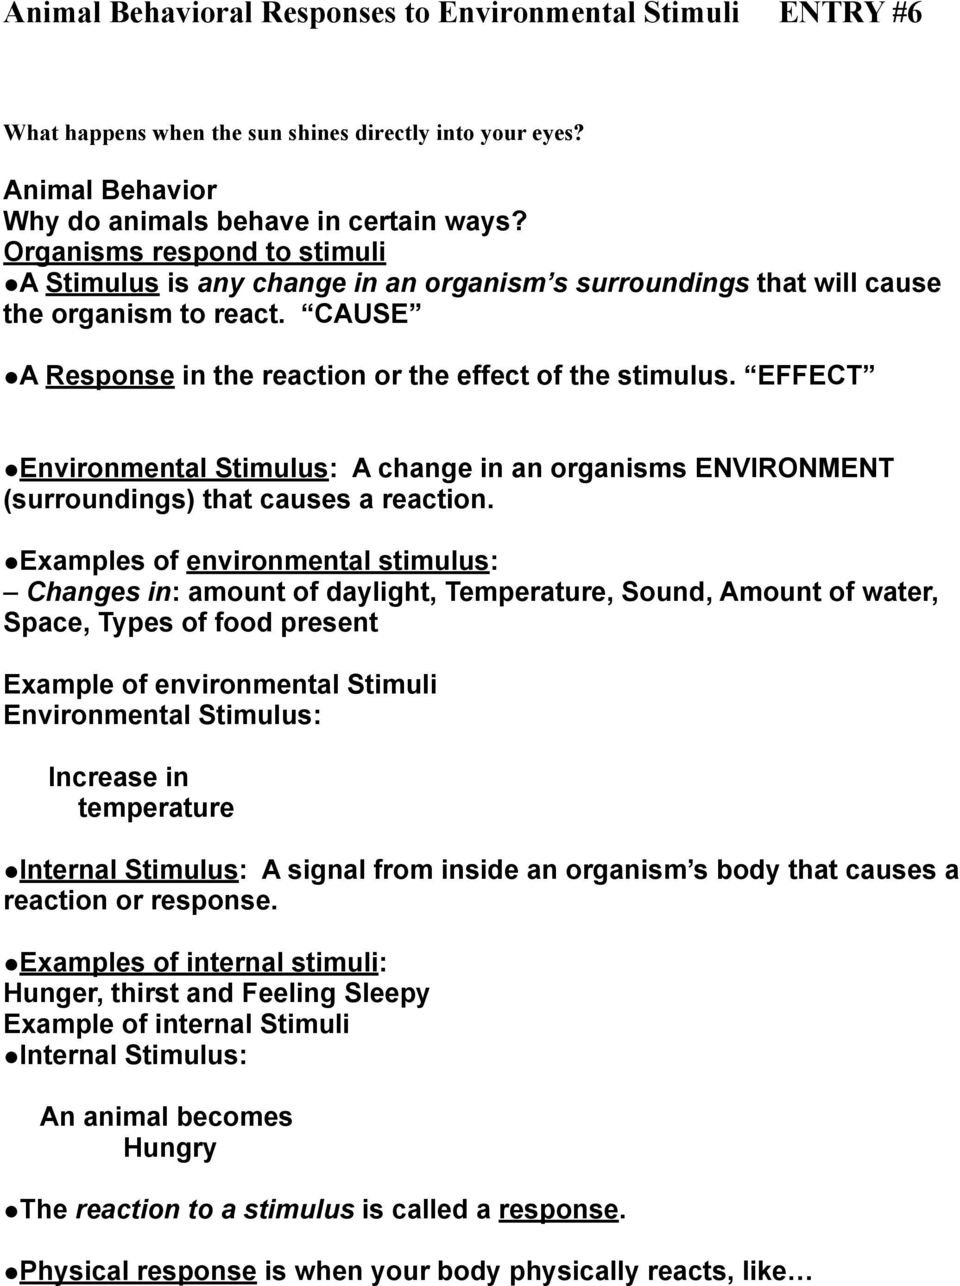 Environmental Stimulus: A change in an organisms ENVIRONMENT (surroundings) that causes a reaction.